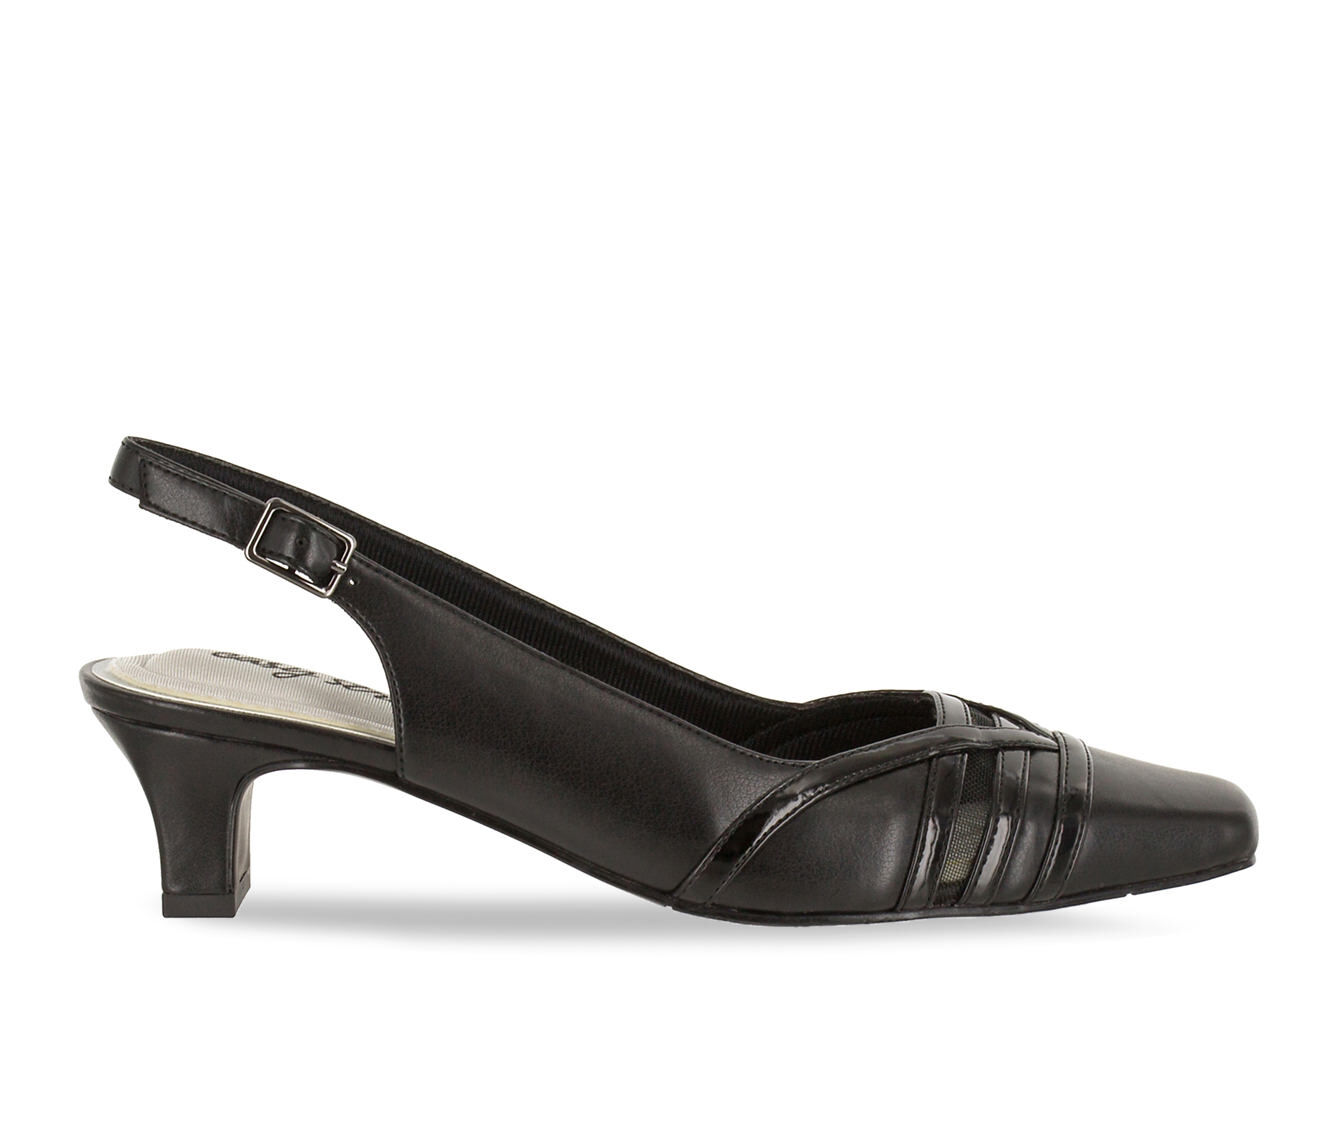 latest style Women's Easy Street Kristen Shoes Black Patent